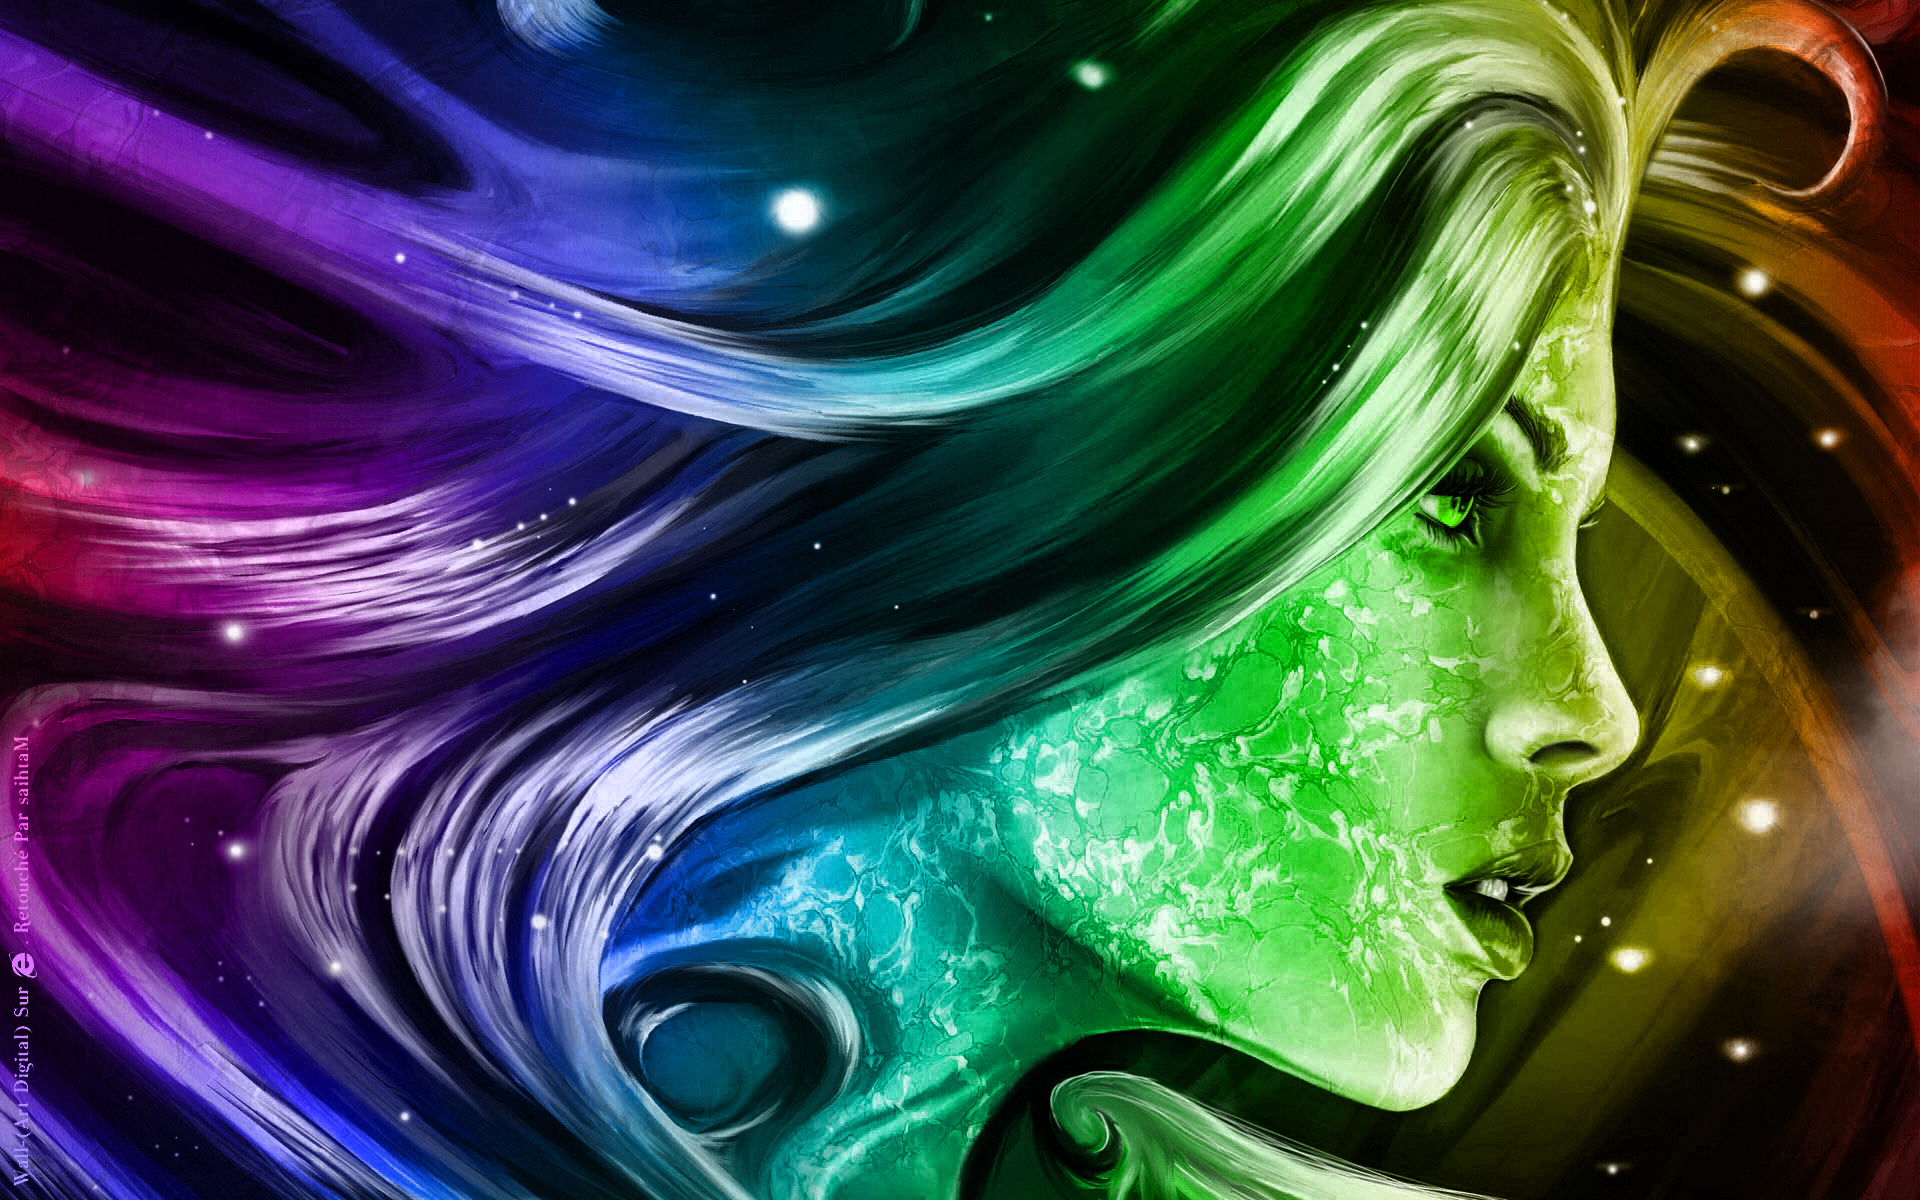 Awesome Digital Art Wallpaper